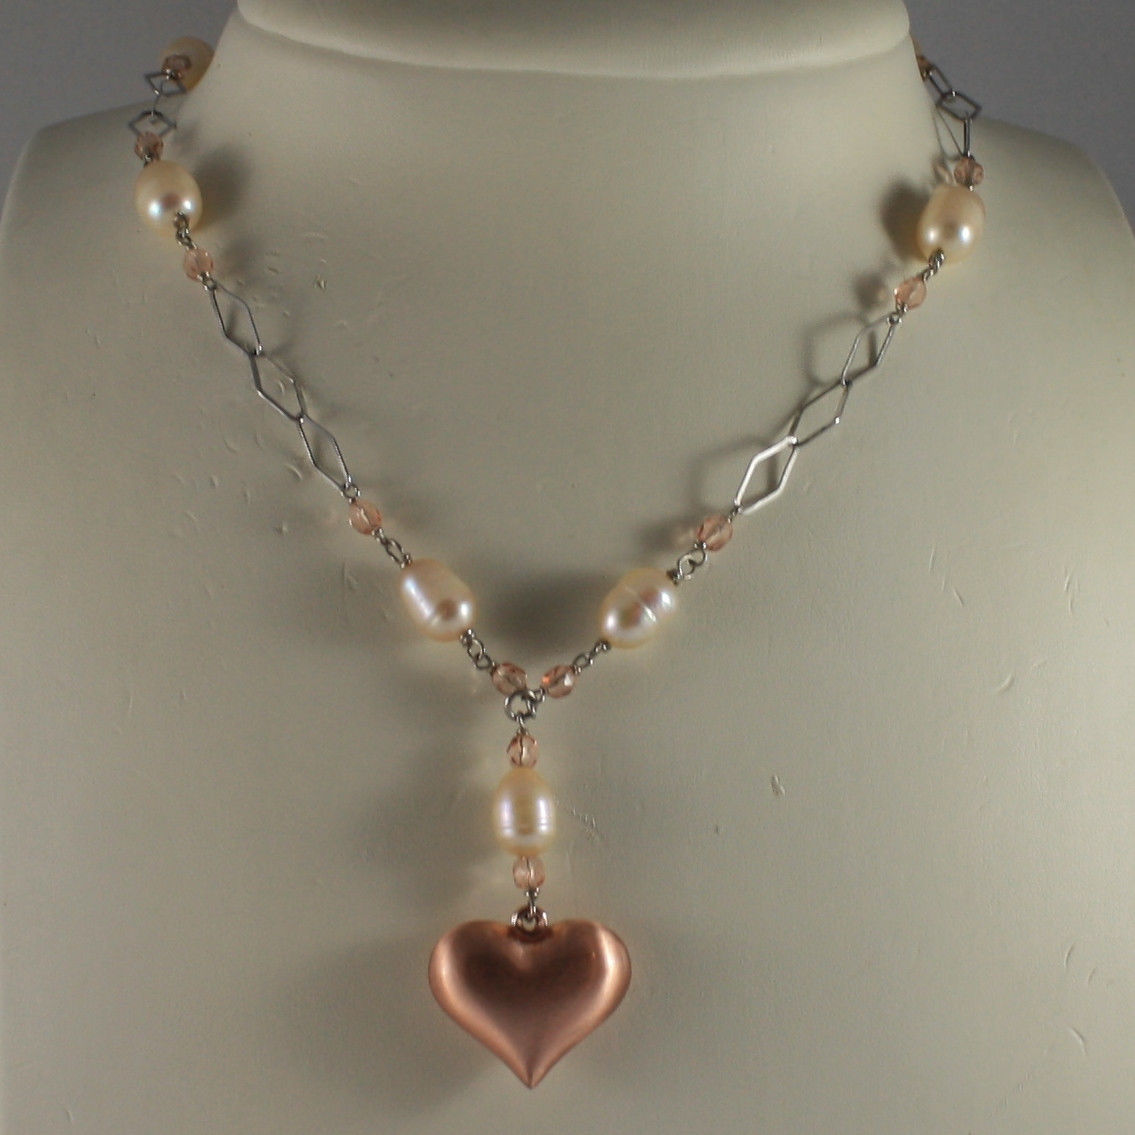 .925 SILVER RHODIUM NECKLACE WITH PINK PEARLS, PINK CRYSTALS AND HEART PENDANT